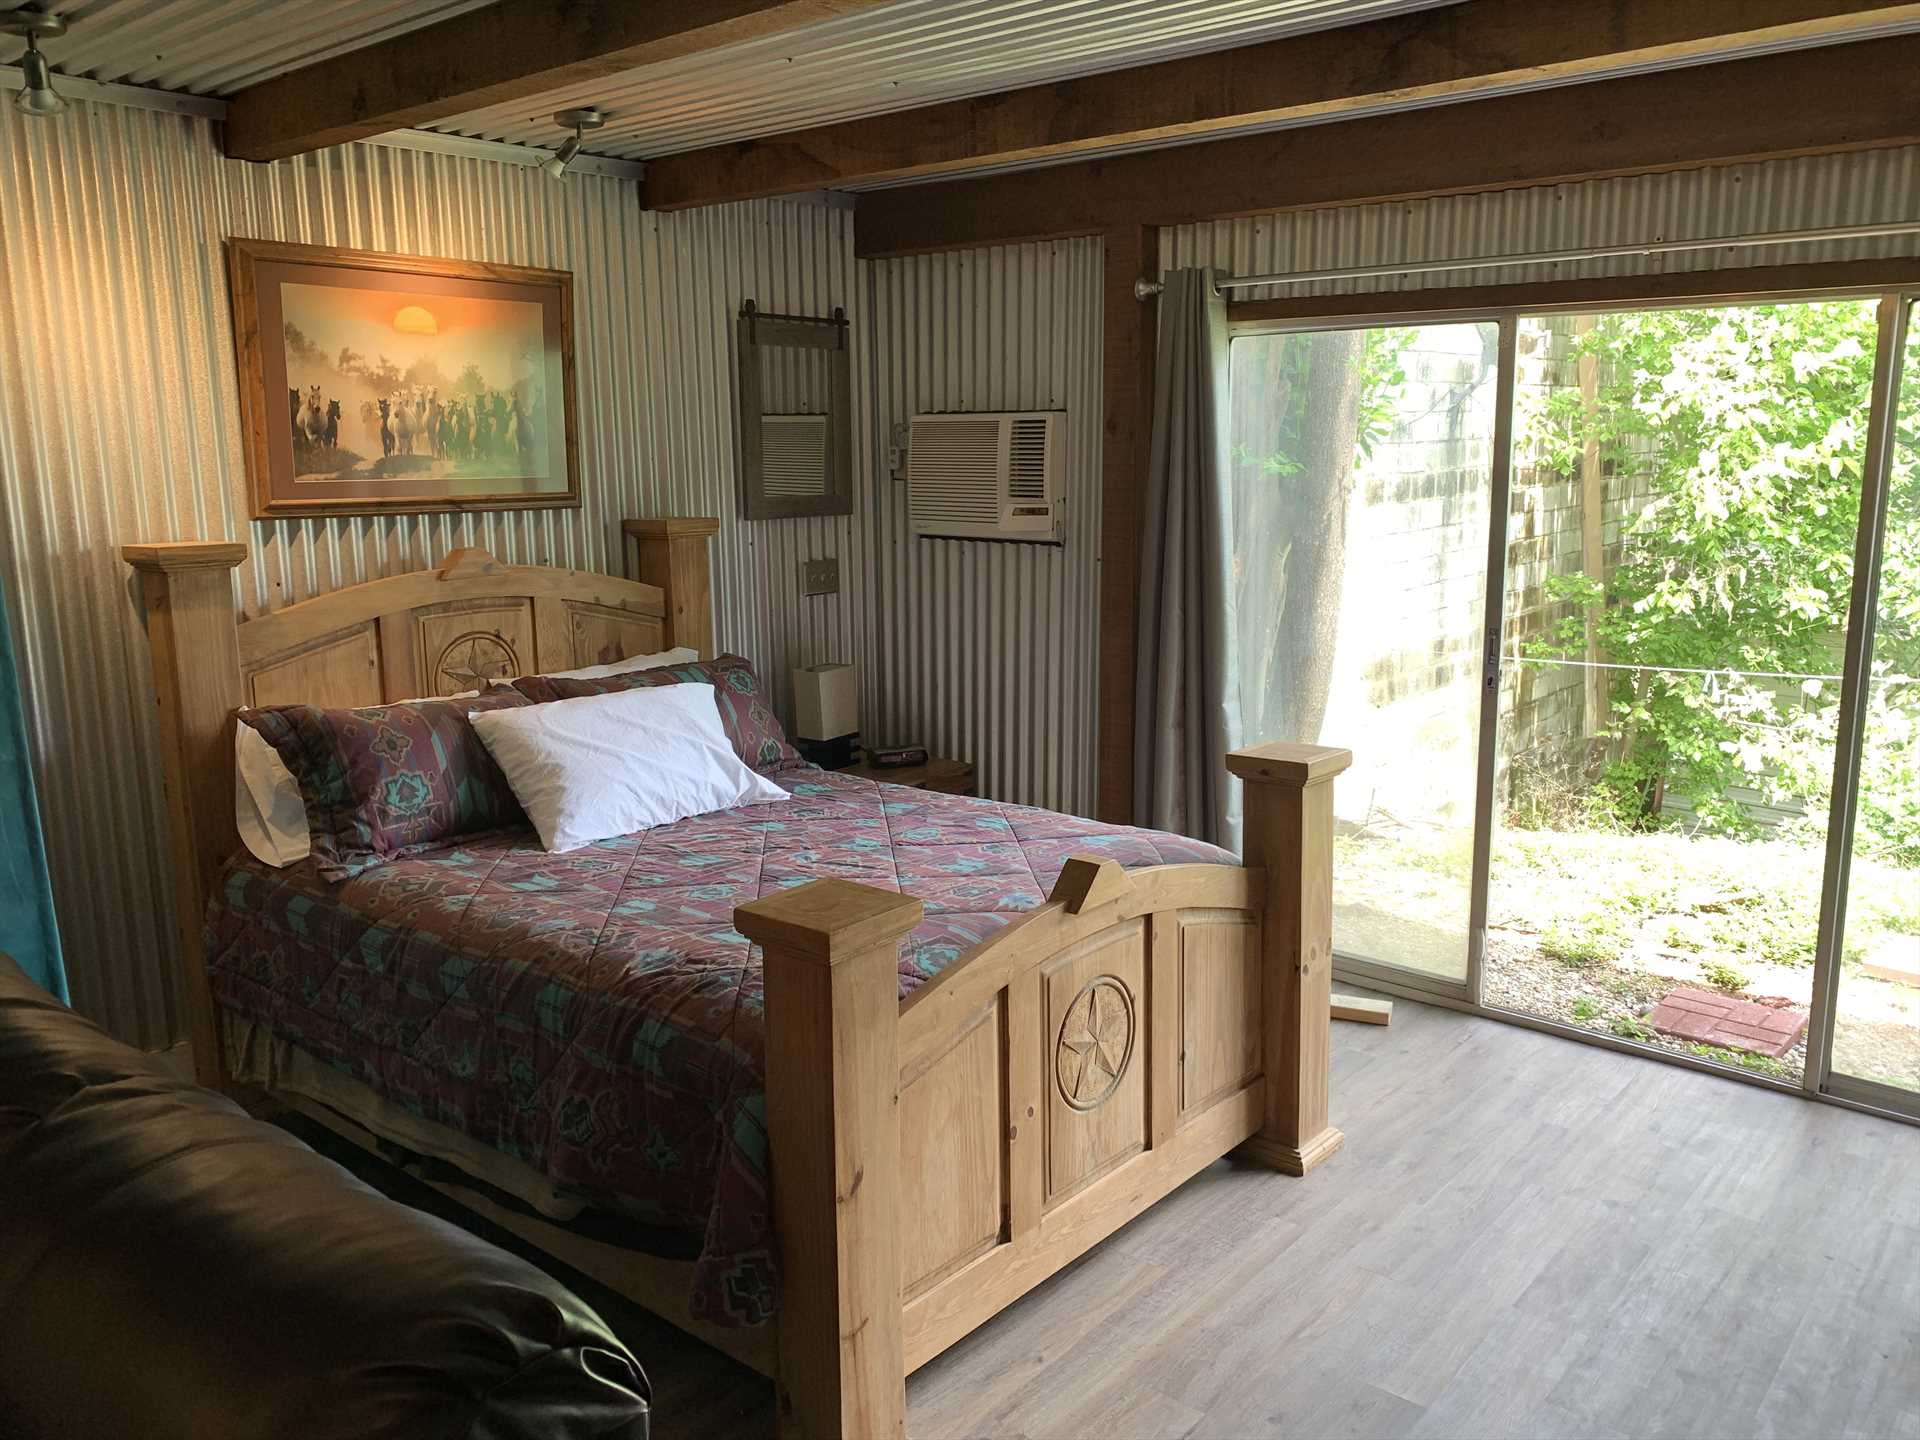 Dream of further Hill Country adventures on the comfy queen-sized bed! Clean linens are provided, and two more guests can rest on the full futon in the living area.